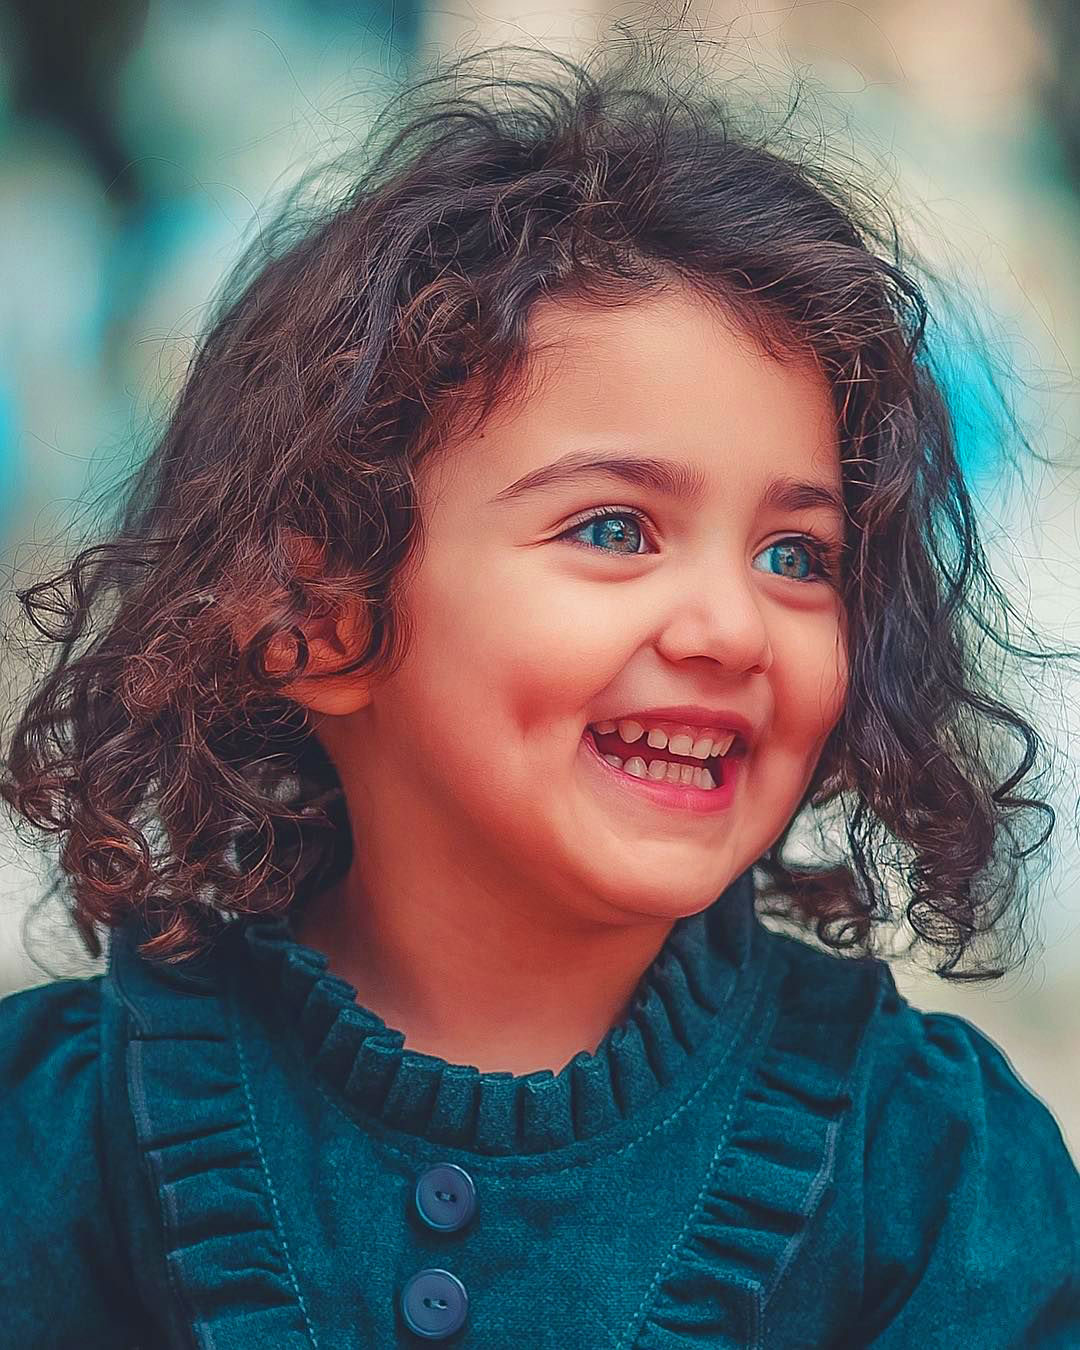 Cute Baby Girl Dp Images Pics pictures Free Download